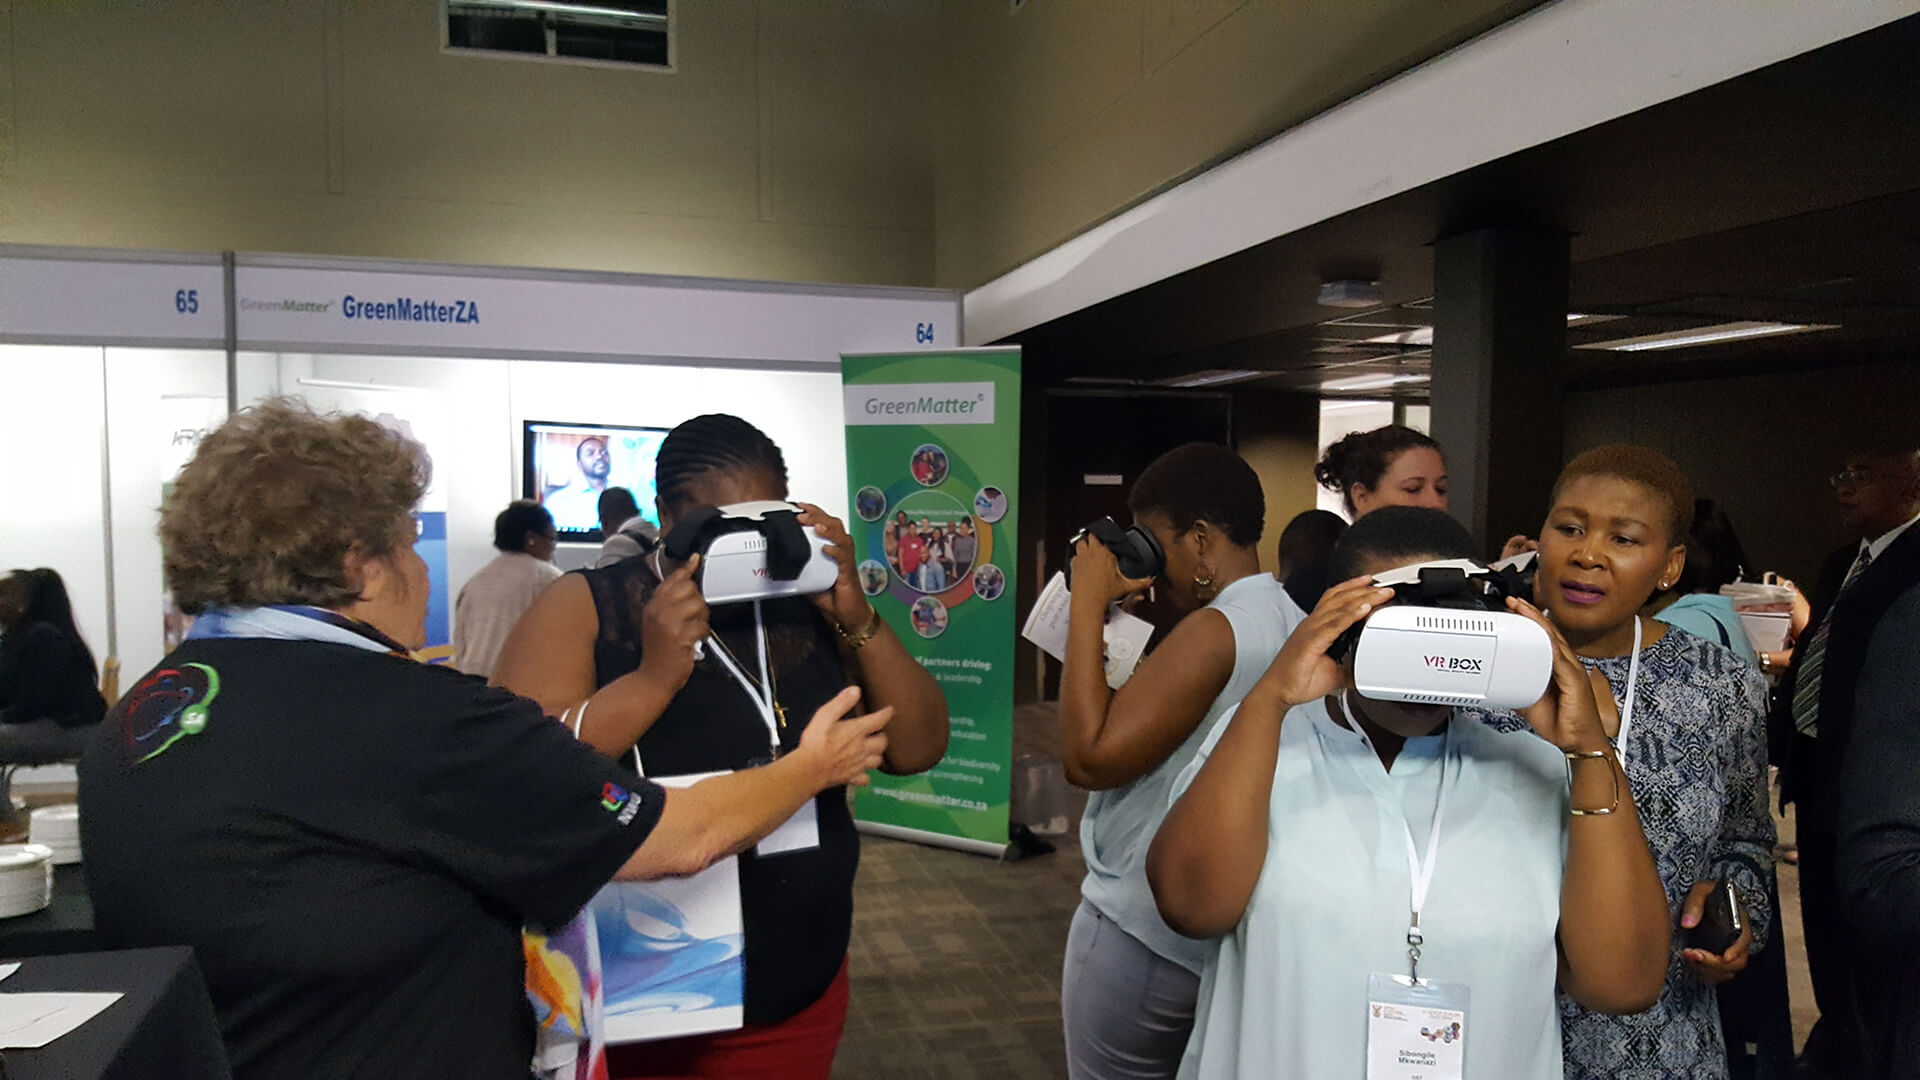 north-west-university-virtual-reality-rentals